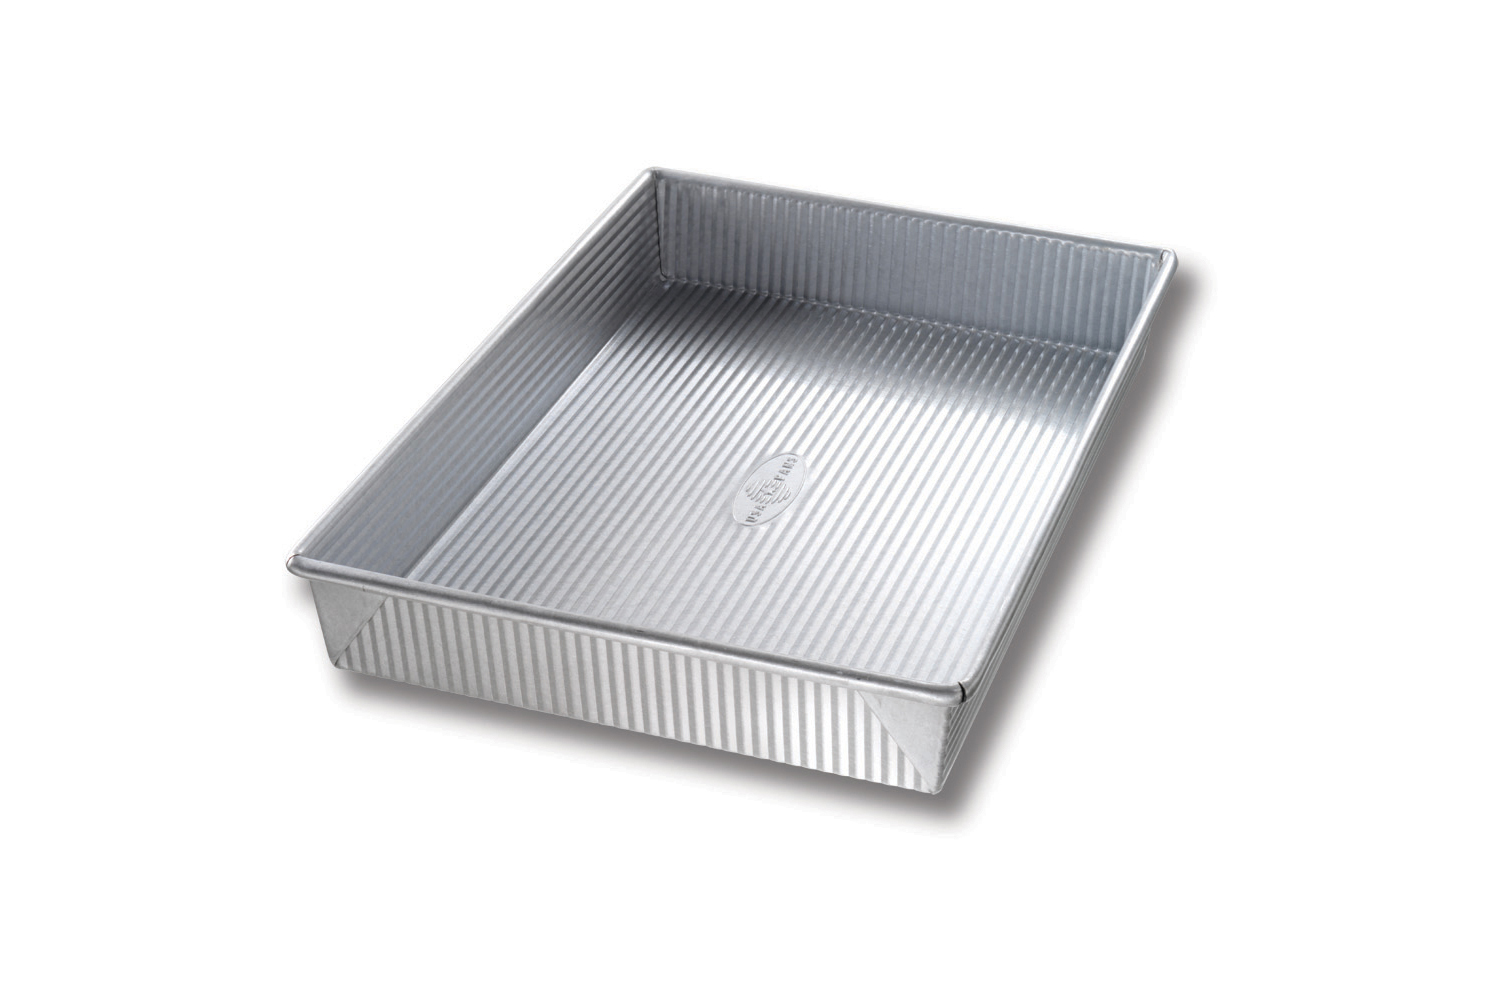 USA Pan Bakeware 9 x 13 x 2-1/4 inch Rectangular Cake Pan